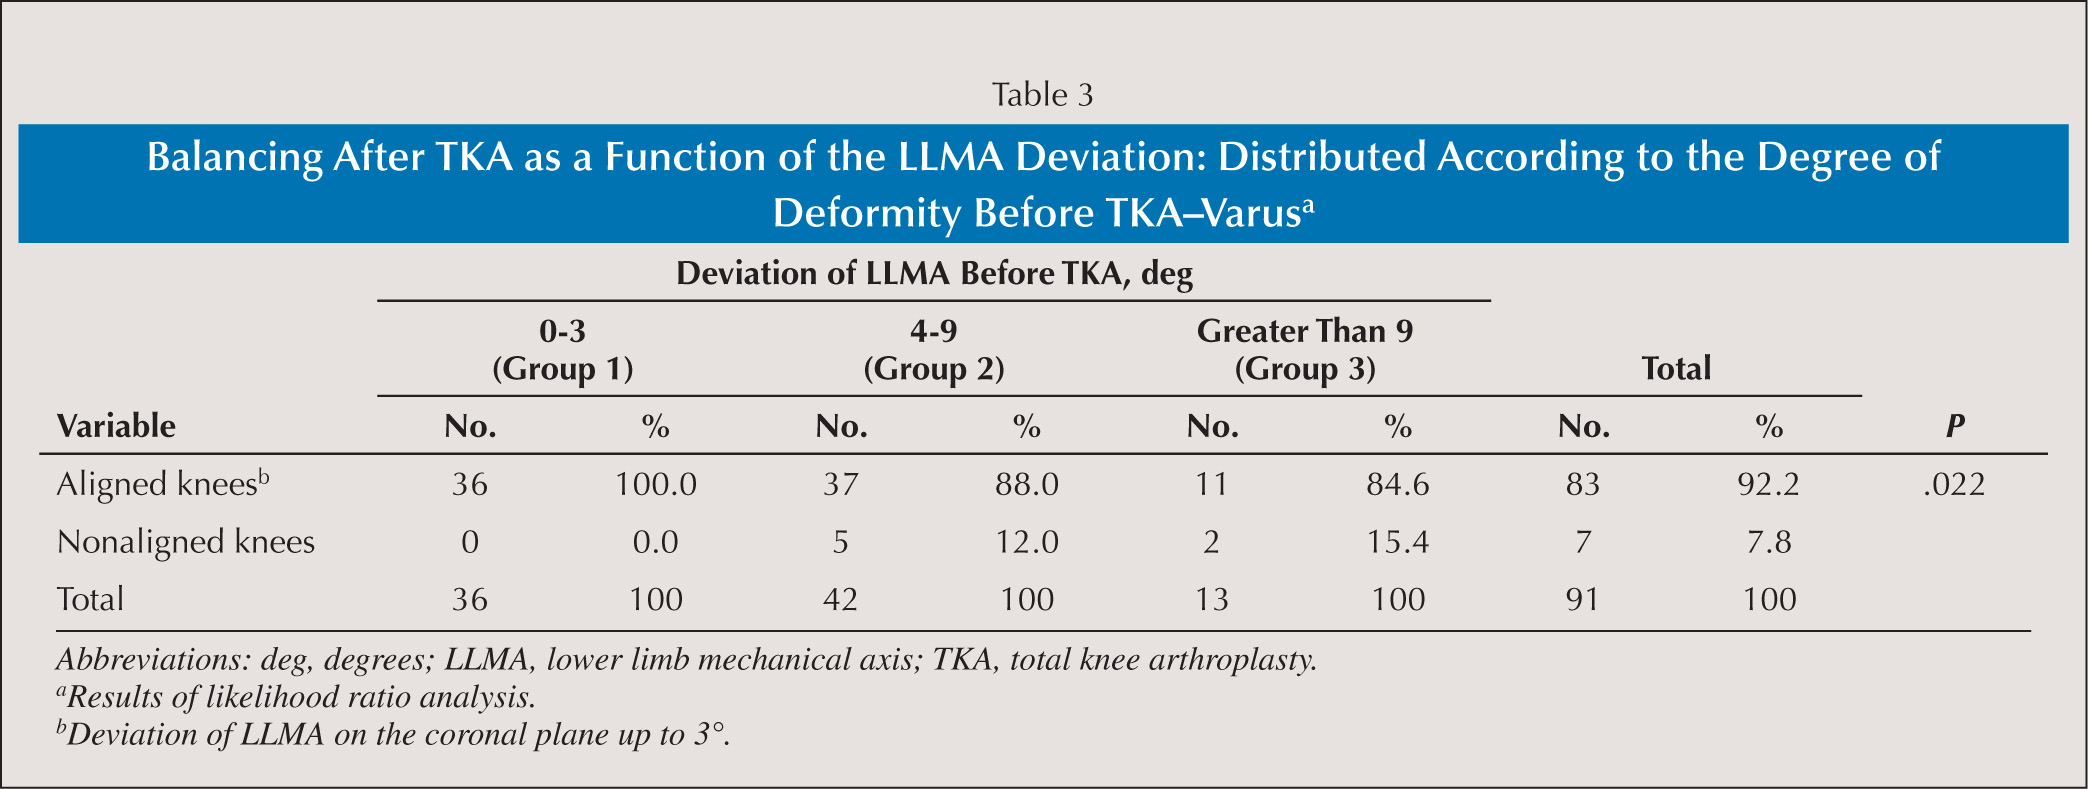 Balancing After TKA as a Function of the LLMA Deviation: Distributed According to the Degree of Deformity Before TKA–Varusa